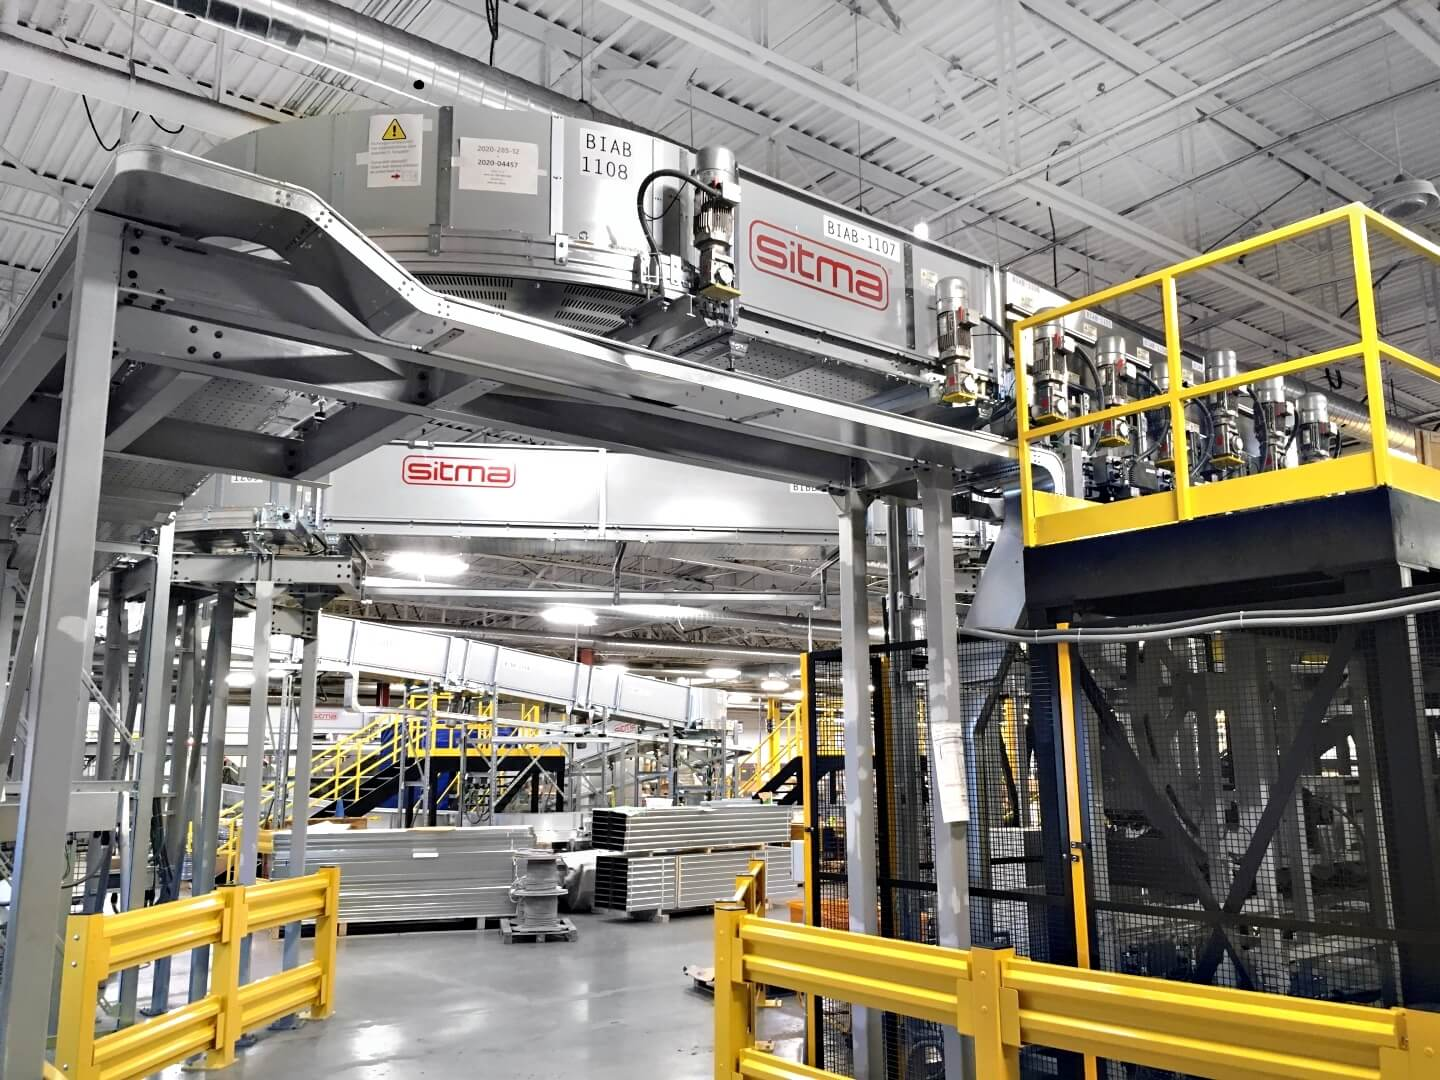 The future of logistics and material handling looks bright with innovation - Photo 6